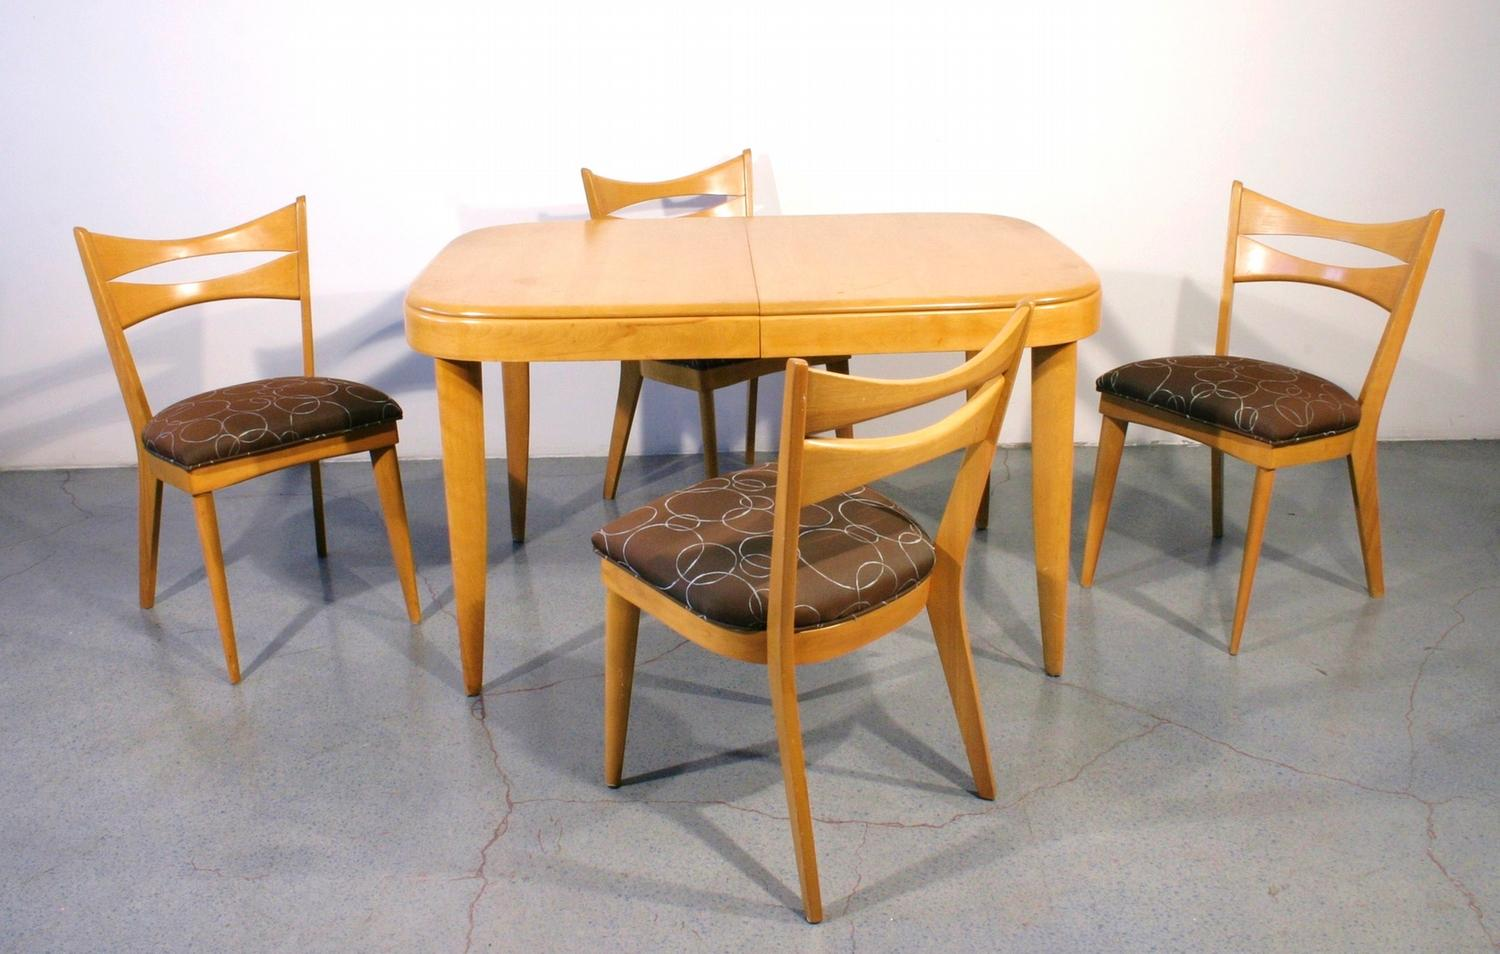 Attirant Heywood Wakefield Dining Set With 4 Chairs C. 1950. Loading Zoom